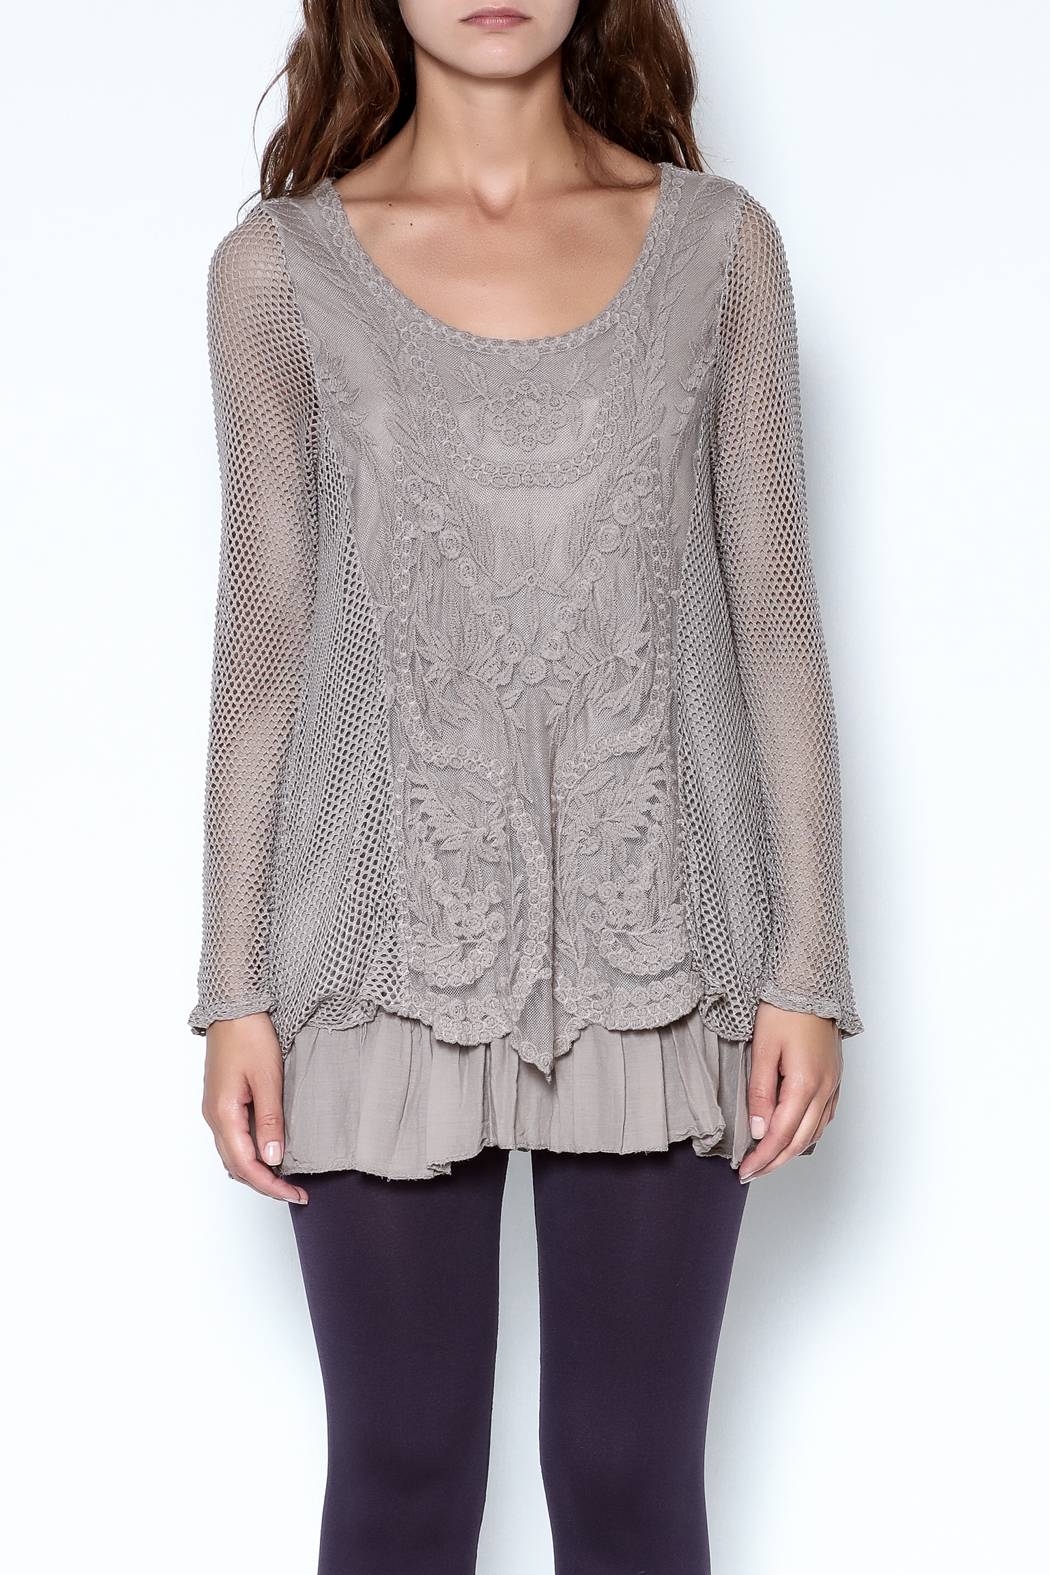 Catherine Lillywhite Knit Lace Top - Main Image